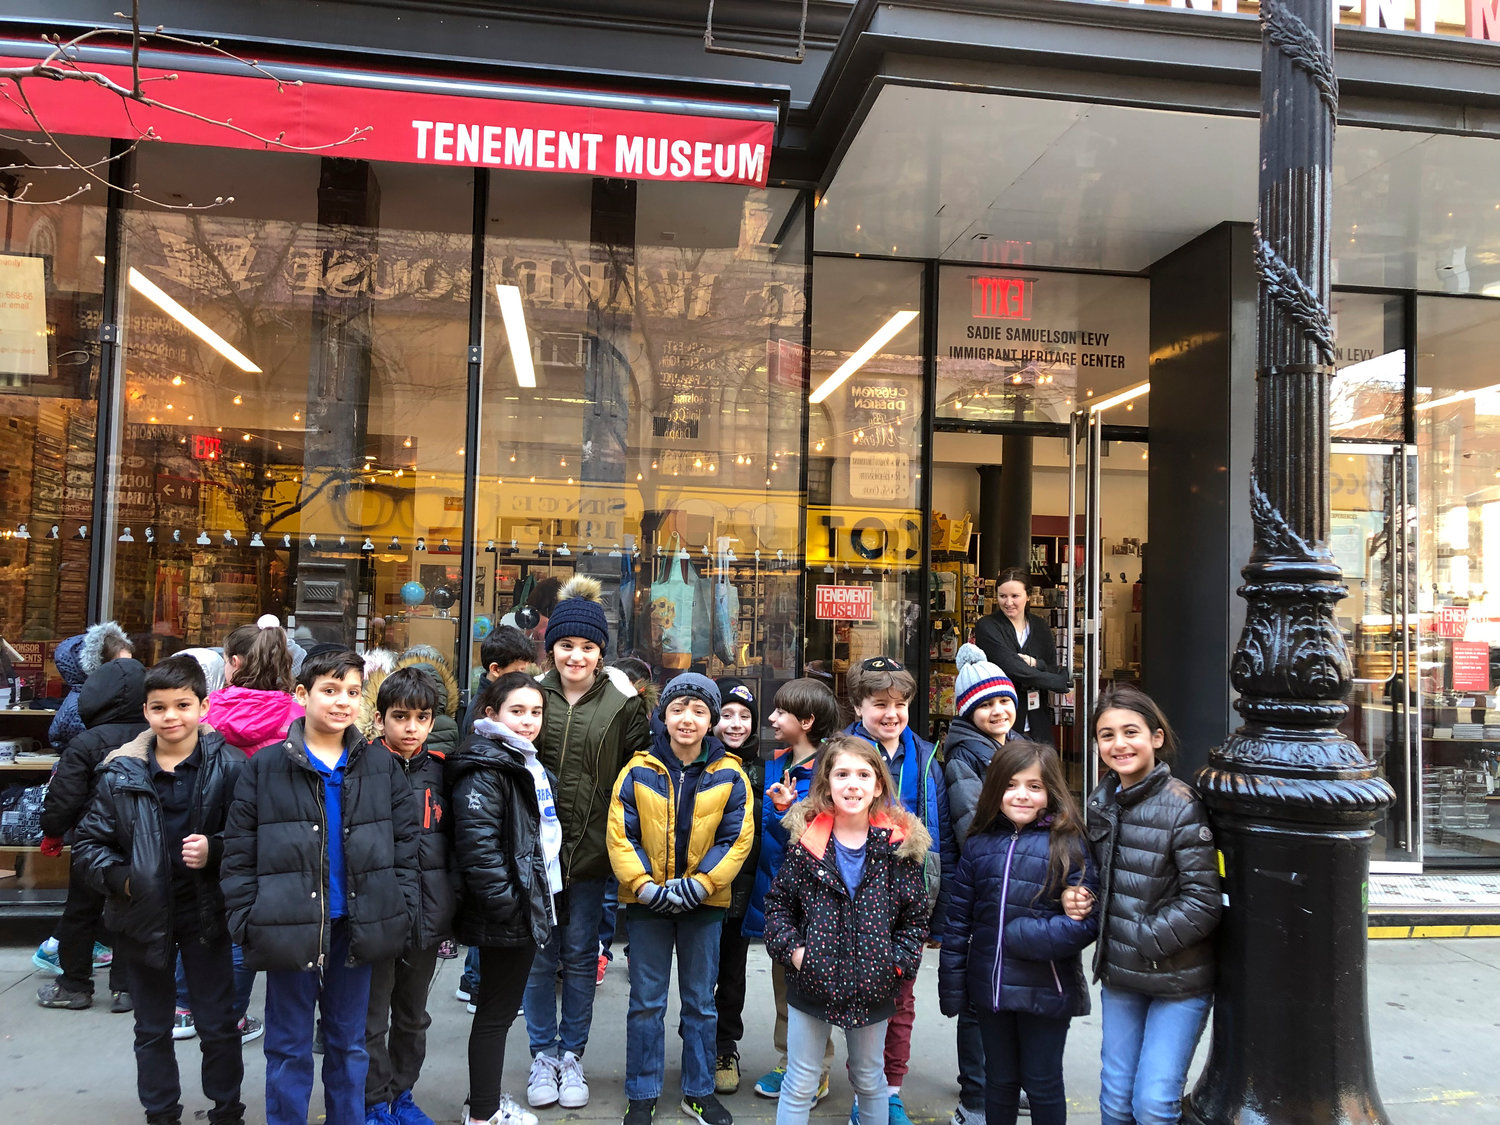 Outside the Tenement Museum in New York City, Brandeis students appeared happy they spent the day outside of school.